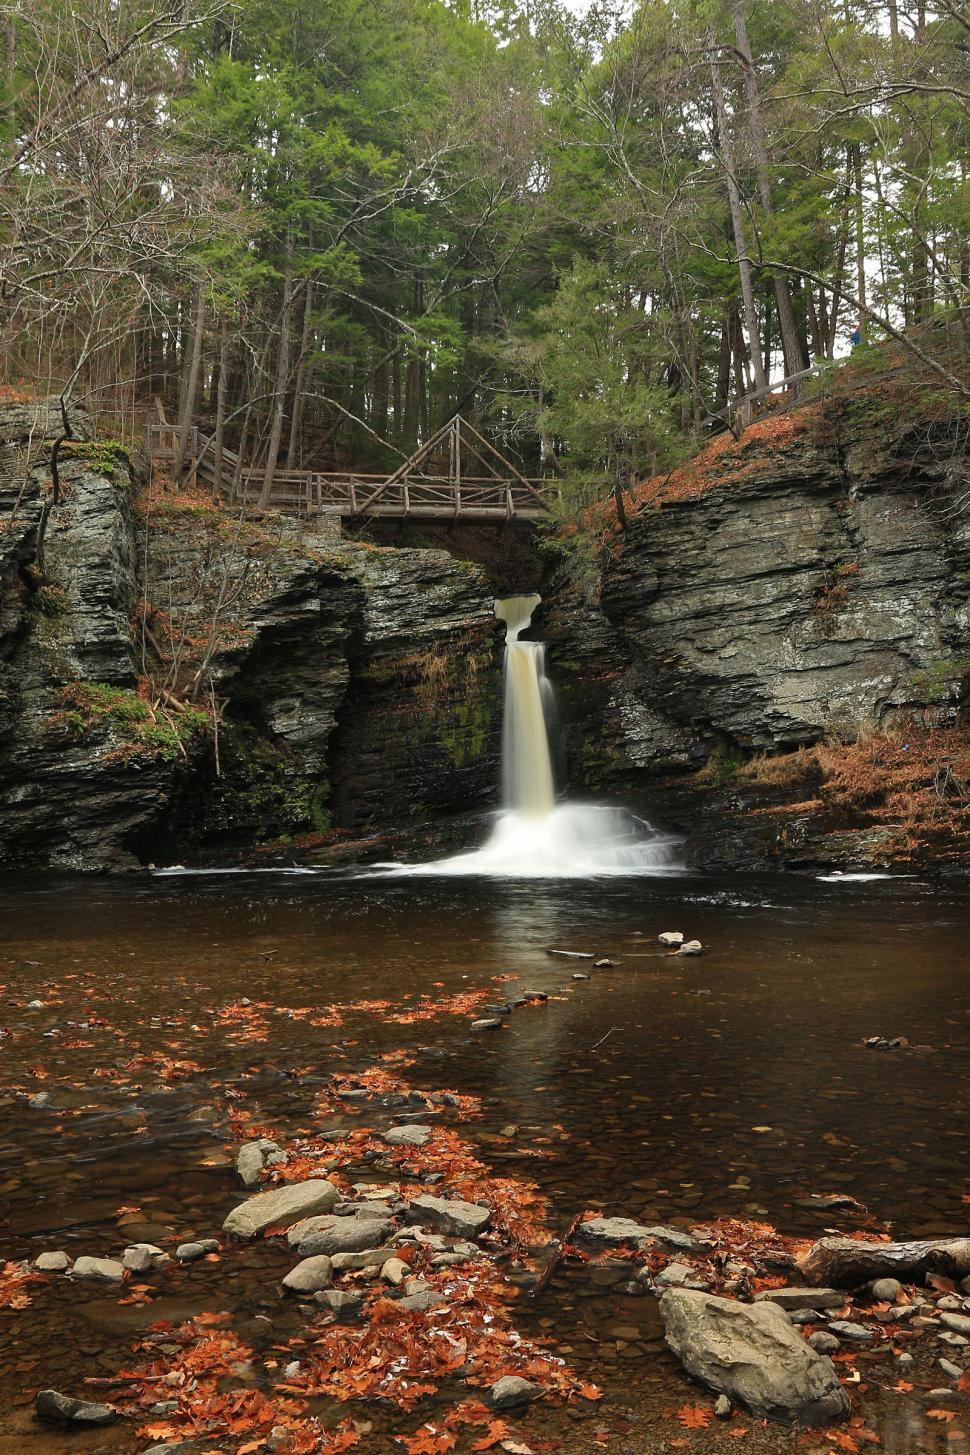 Download Free Stock HD Photo of Deer Leap Falls at George W. Childs Recreation Site. Dingmans Fe Online